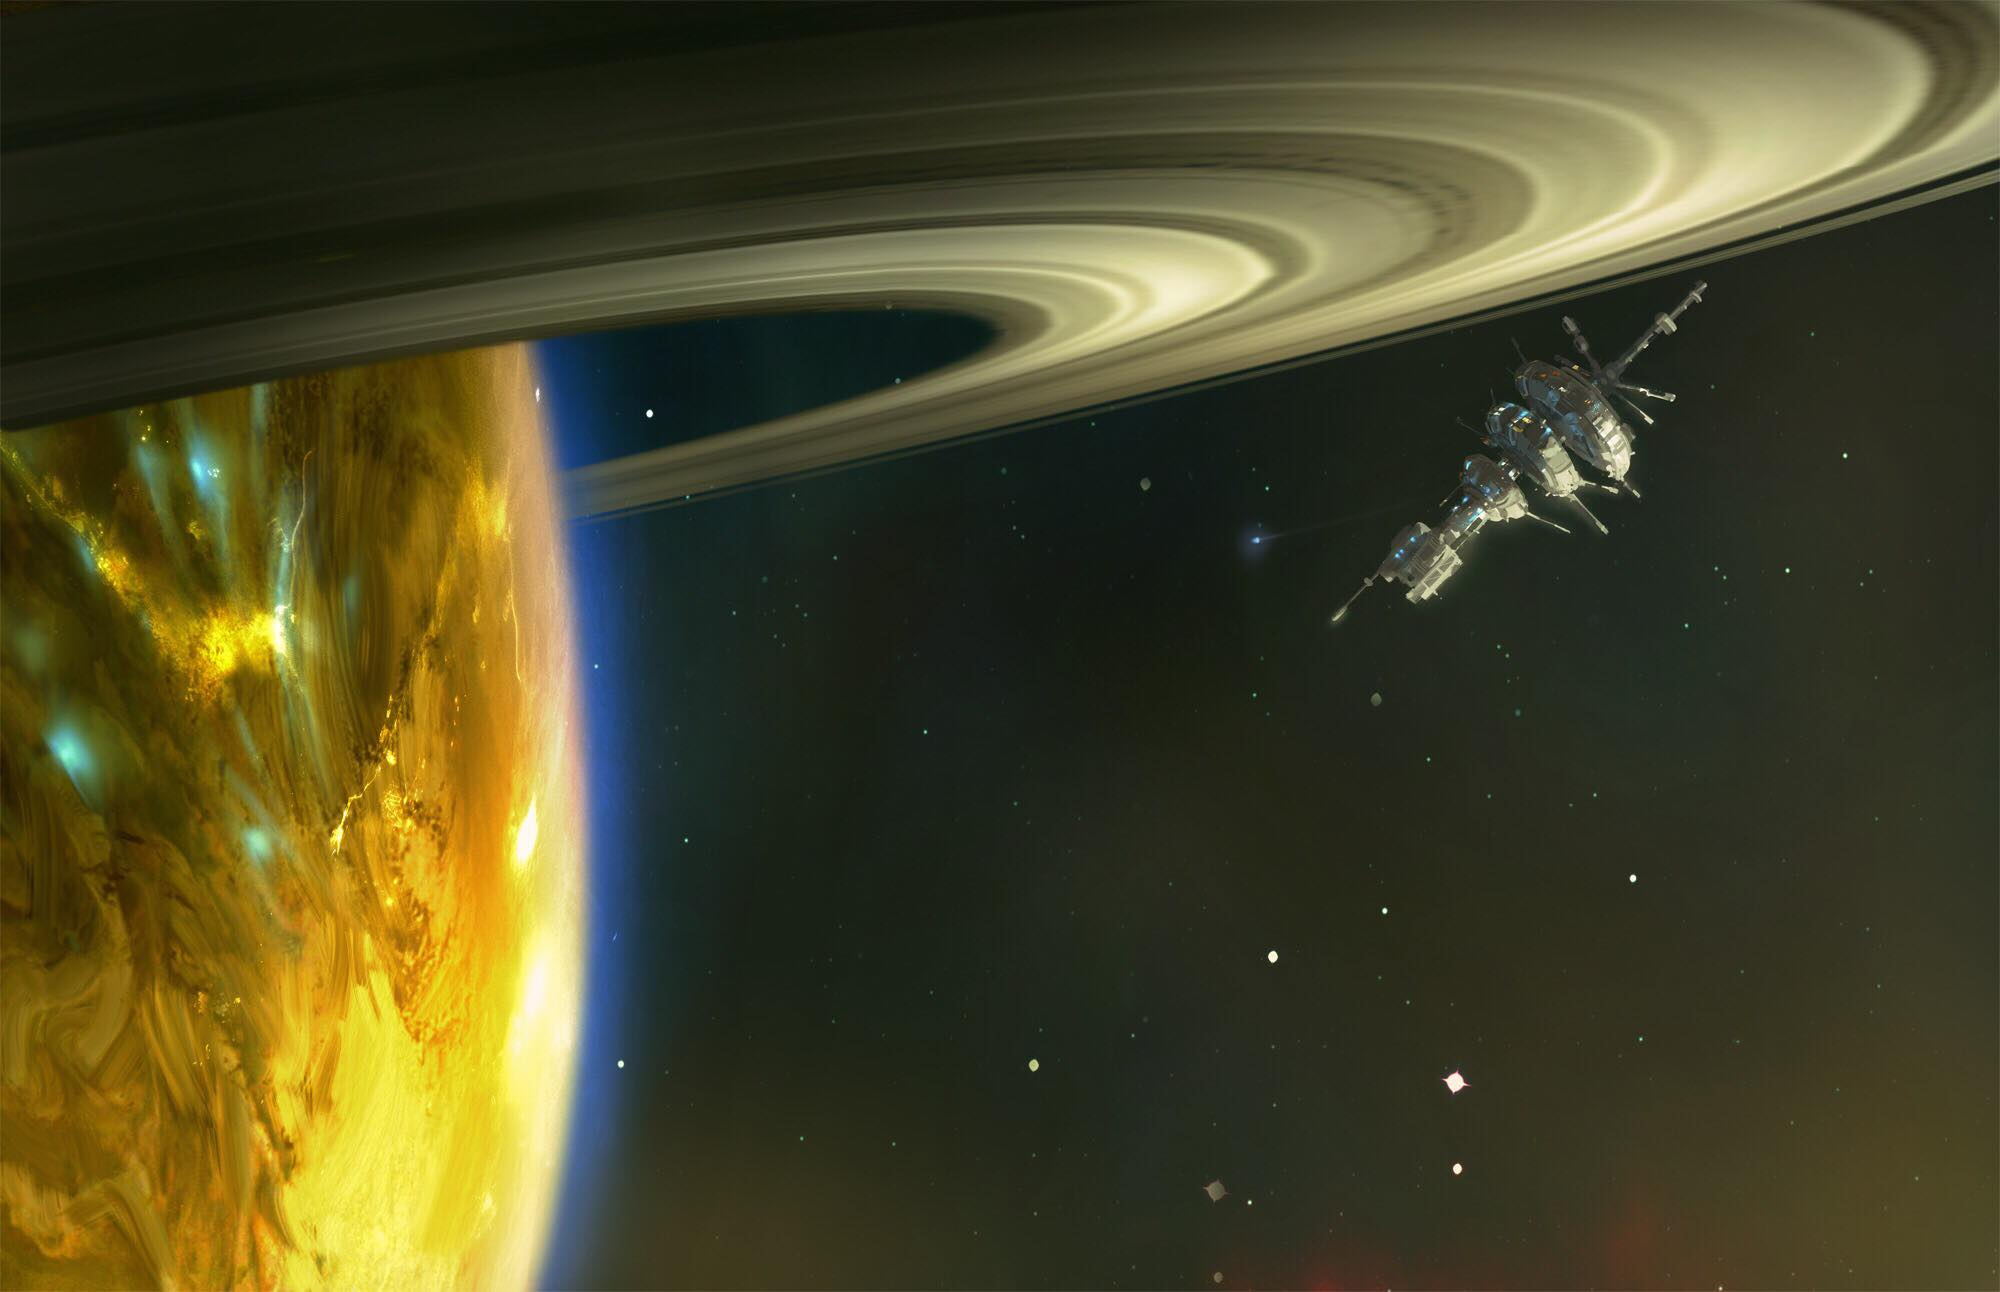 Station FS-7 orbiting the gas giant Xene in the Kua system.